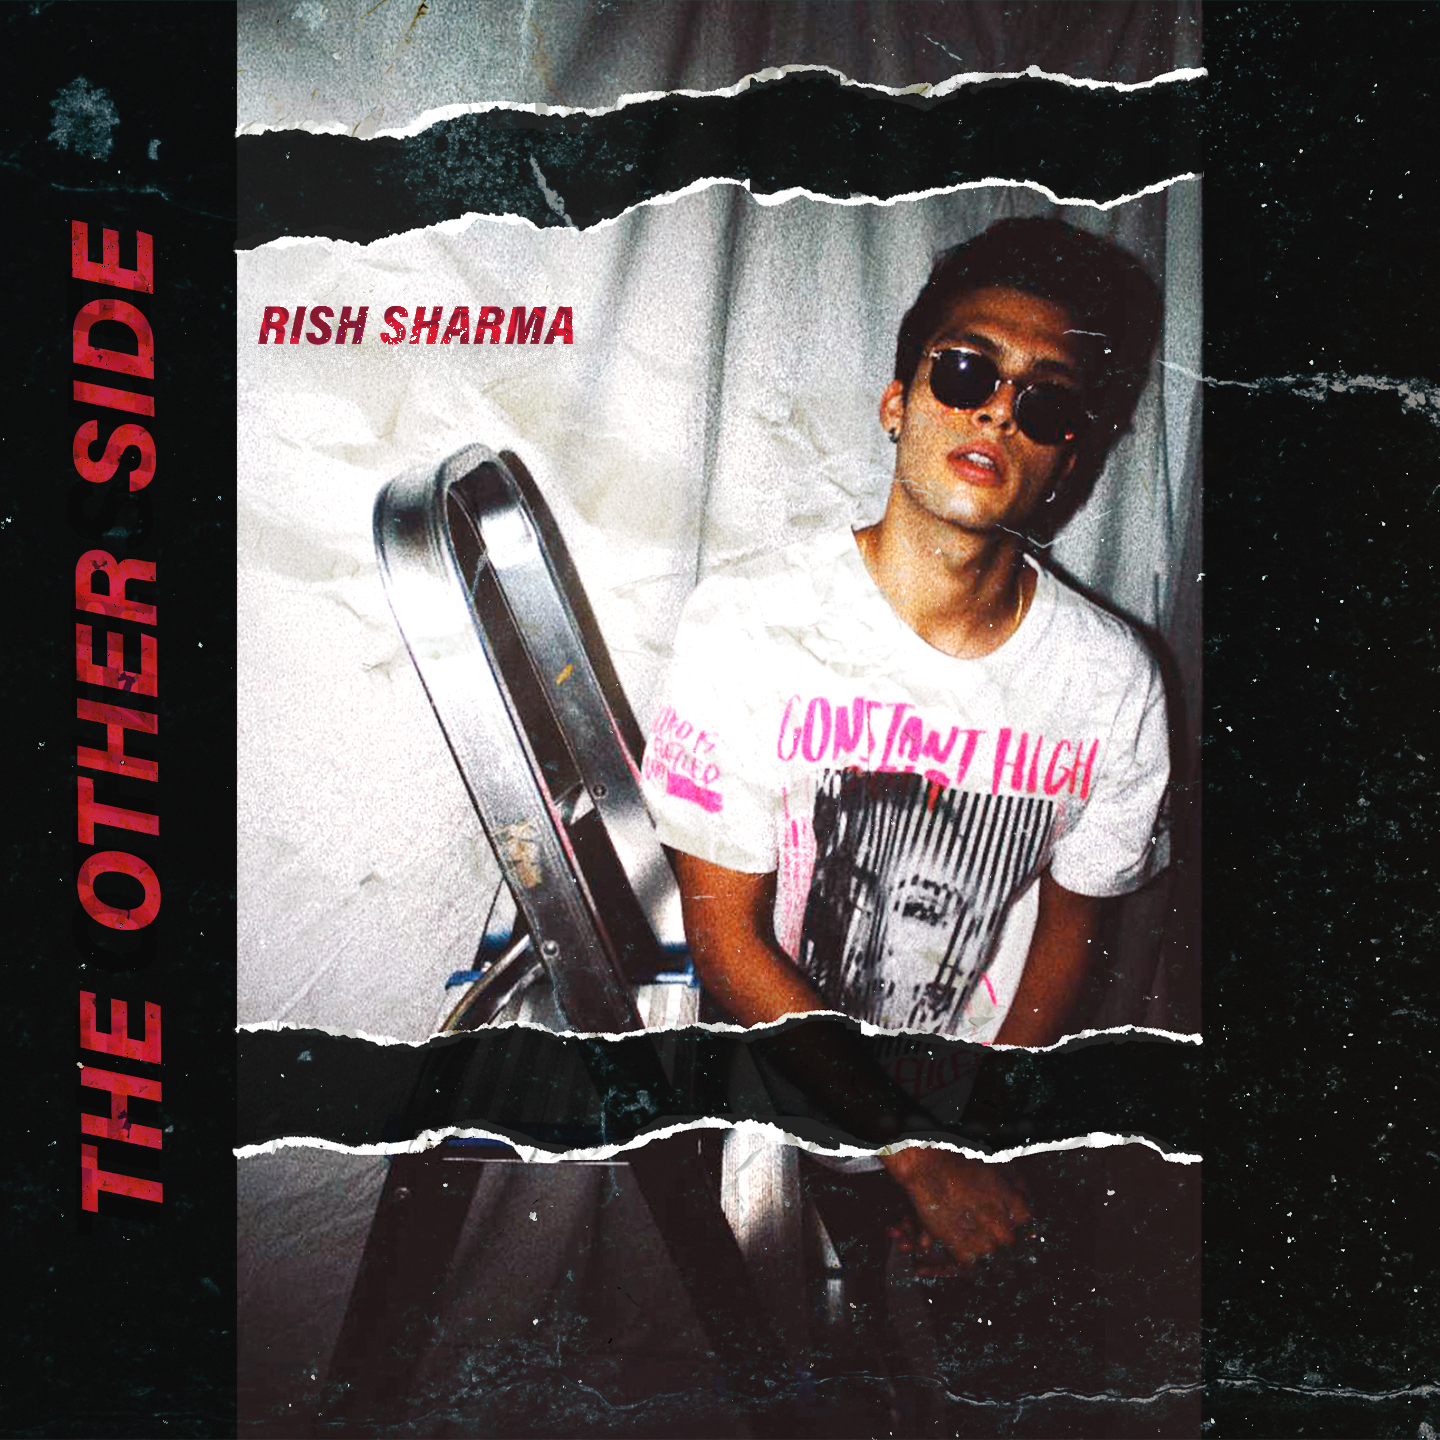 Rish sharma  the other side %28artwork%29